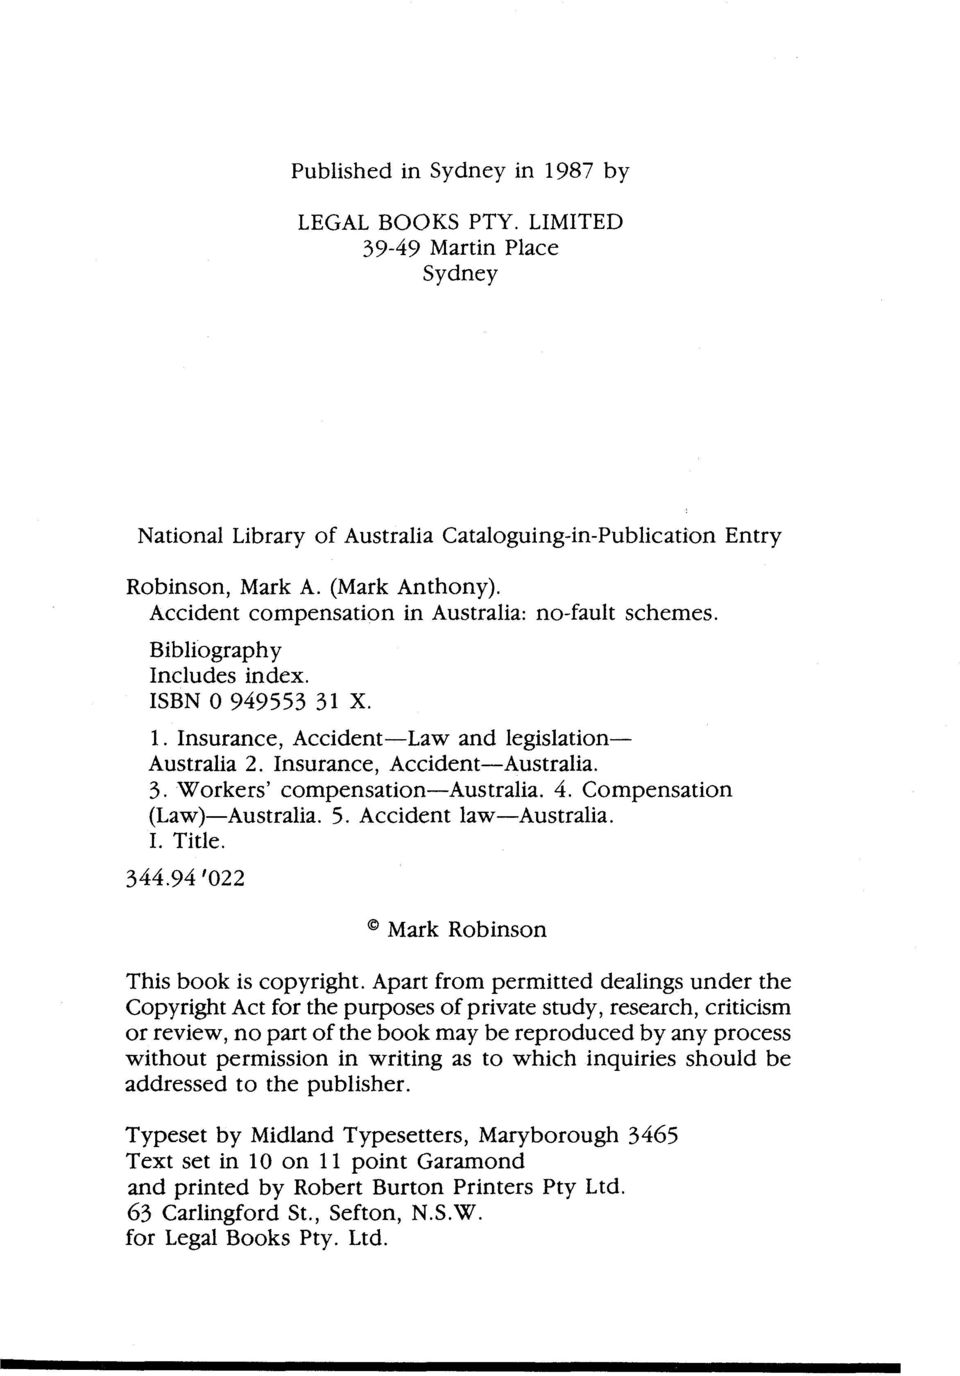 4. Compensation (Law)-Australia. 5. Accident law-australia. I. Title. @ Mark Robinson This book is copyright.